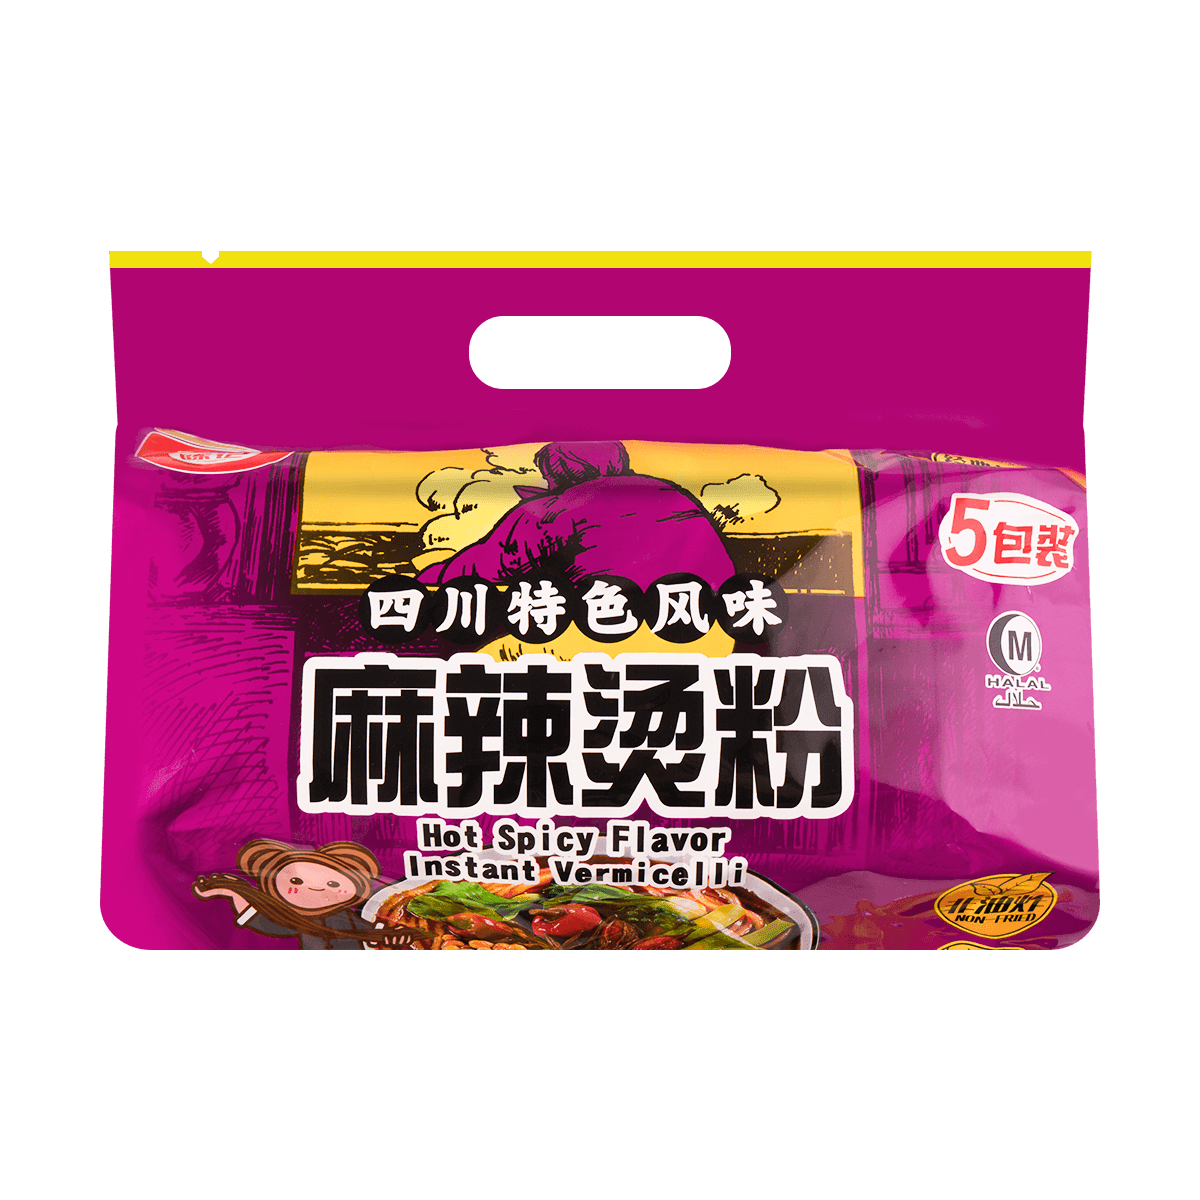 Yamibuy.com:Customer reviews:BAIJIA Instant Vermicelli 5packs -Spicy Flavor 5pcs 525g